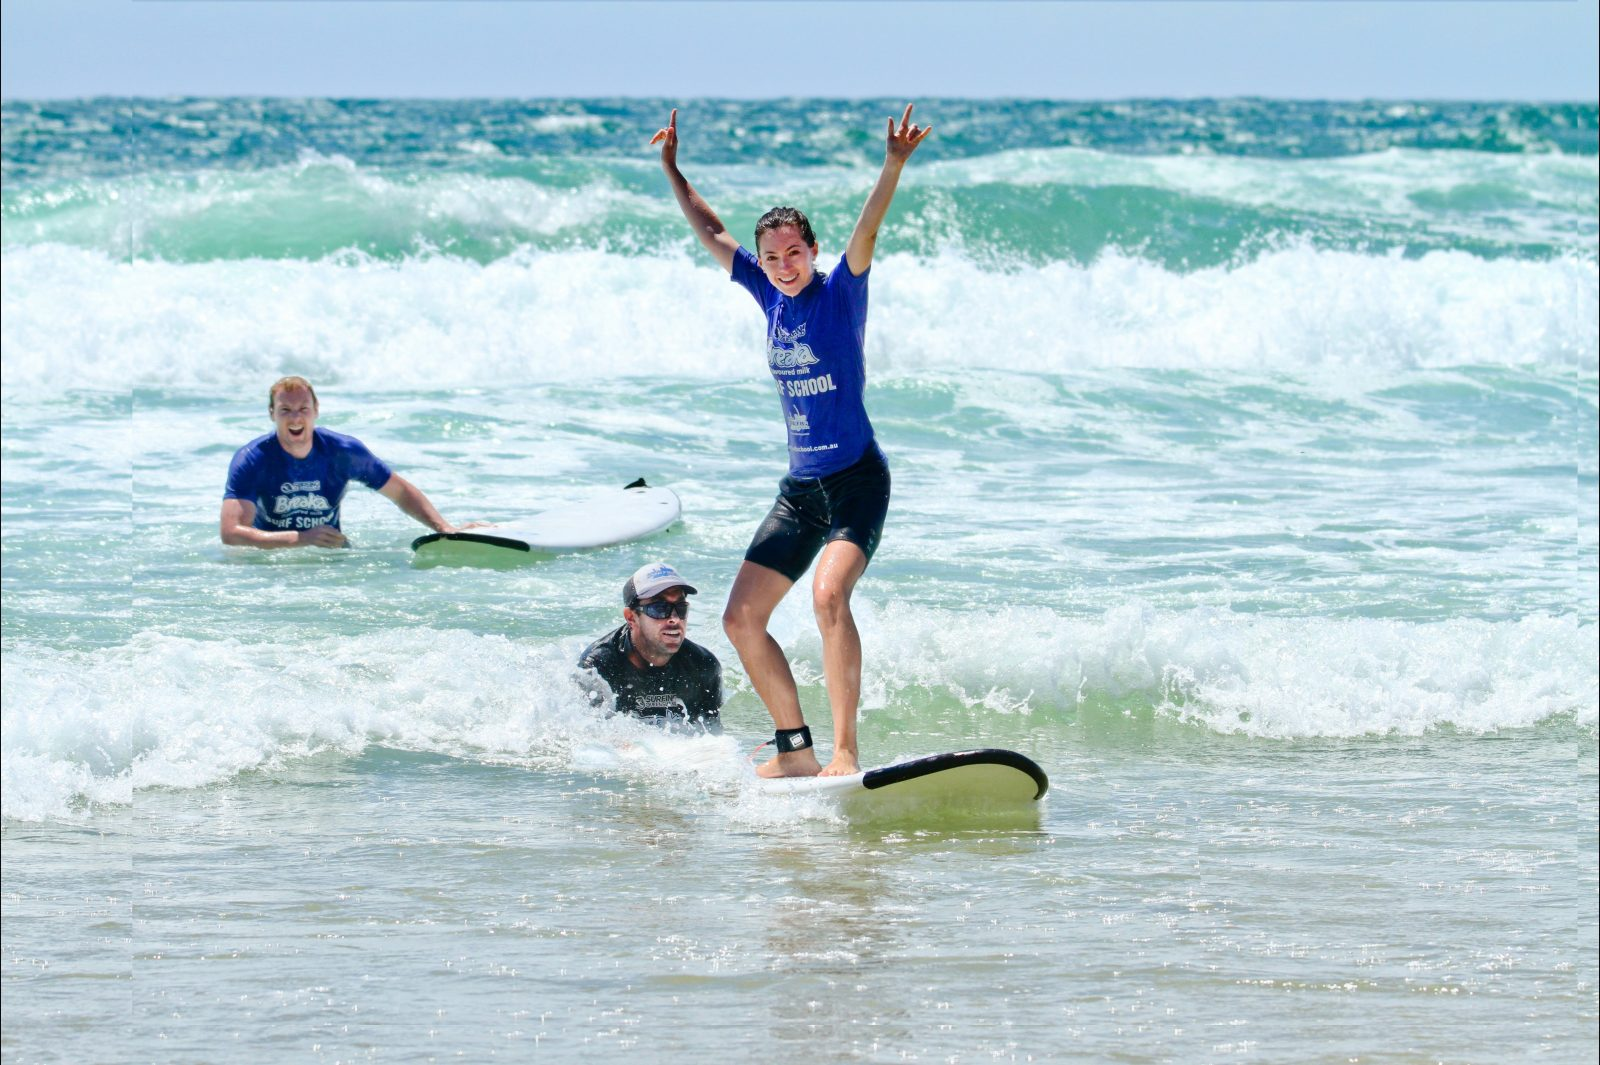 Surfing in the warm waters of the Sunshine Coast